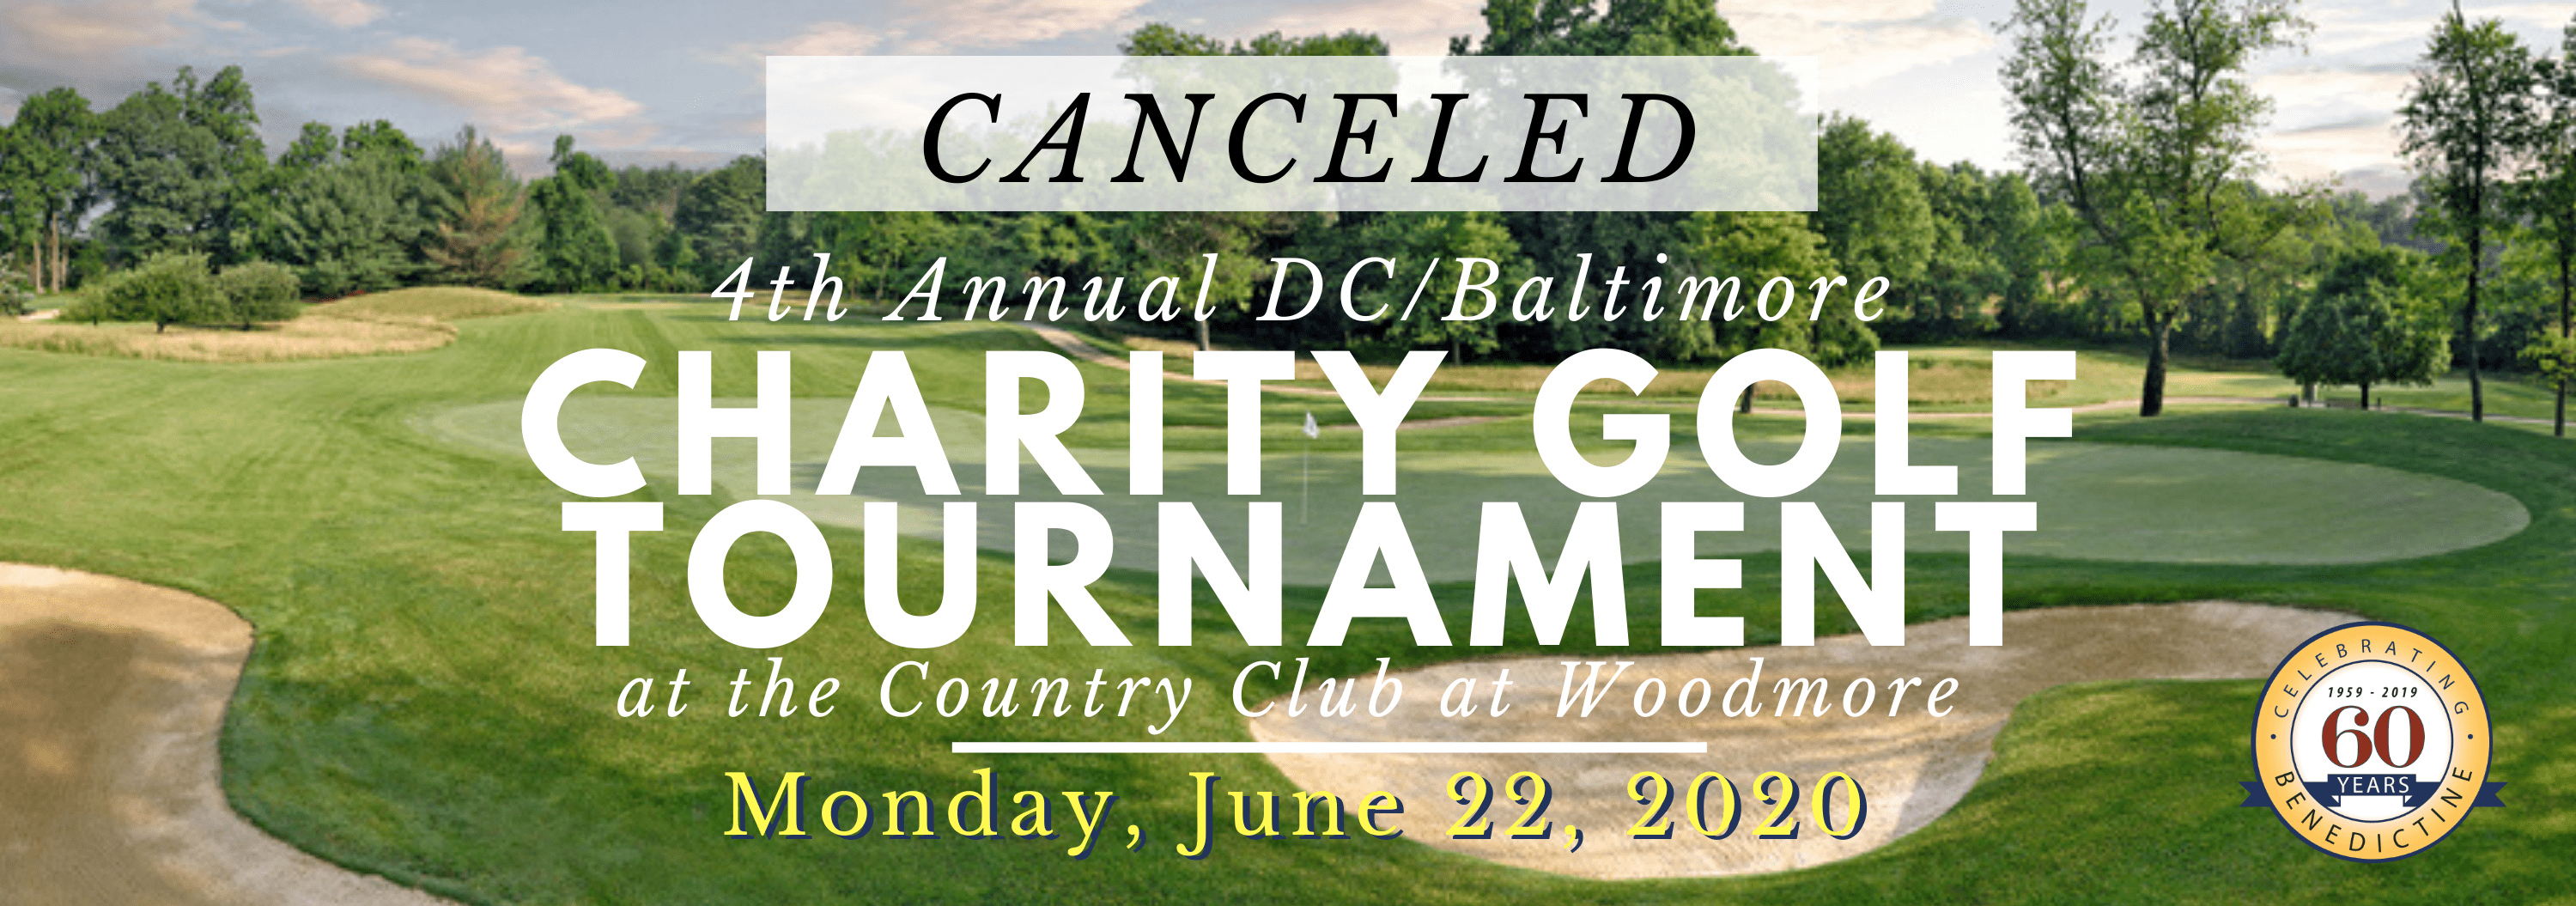 The 4th Annual DC Area Charity Golf Tournament, hosted by Thad Fletcher to benefit Benedictine